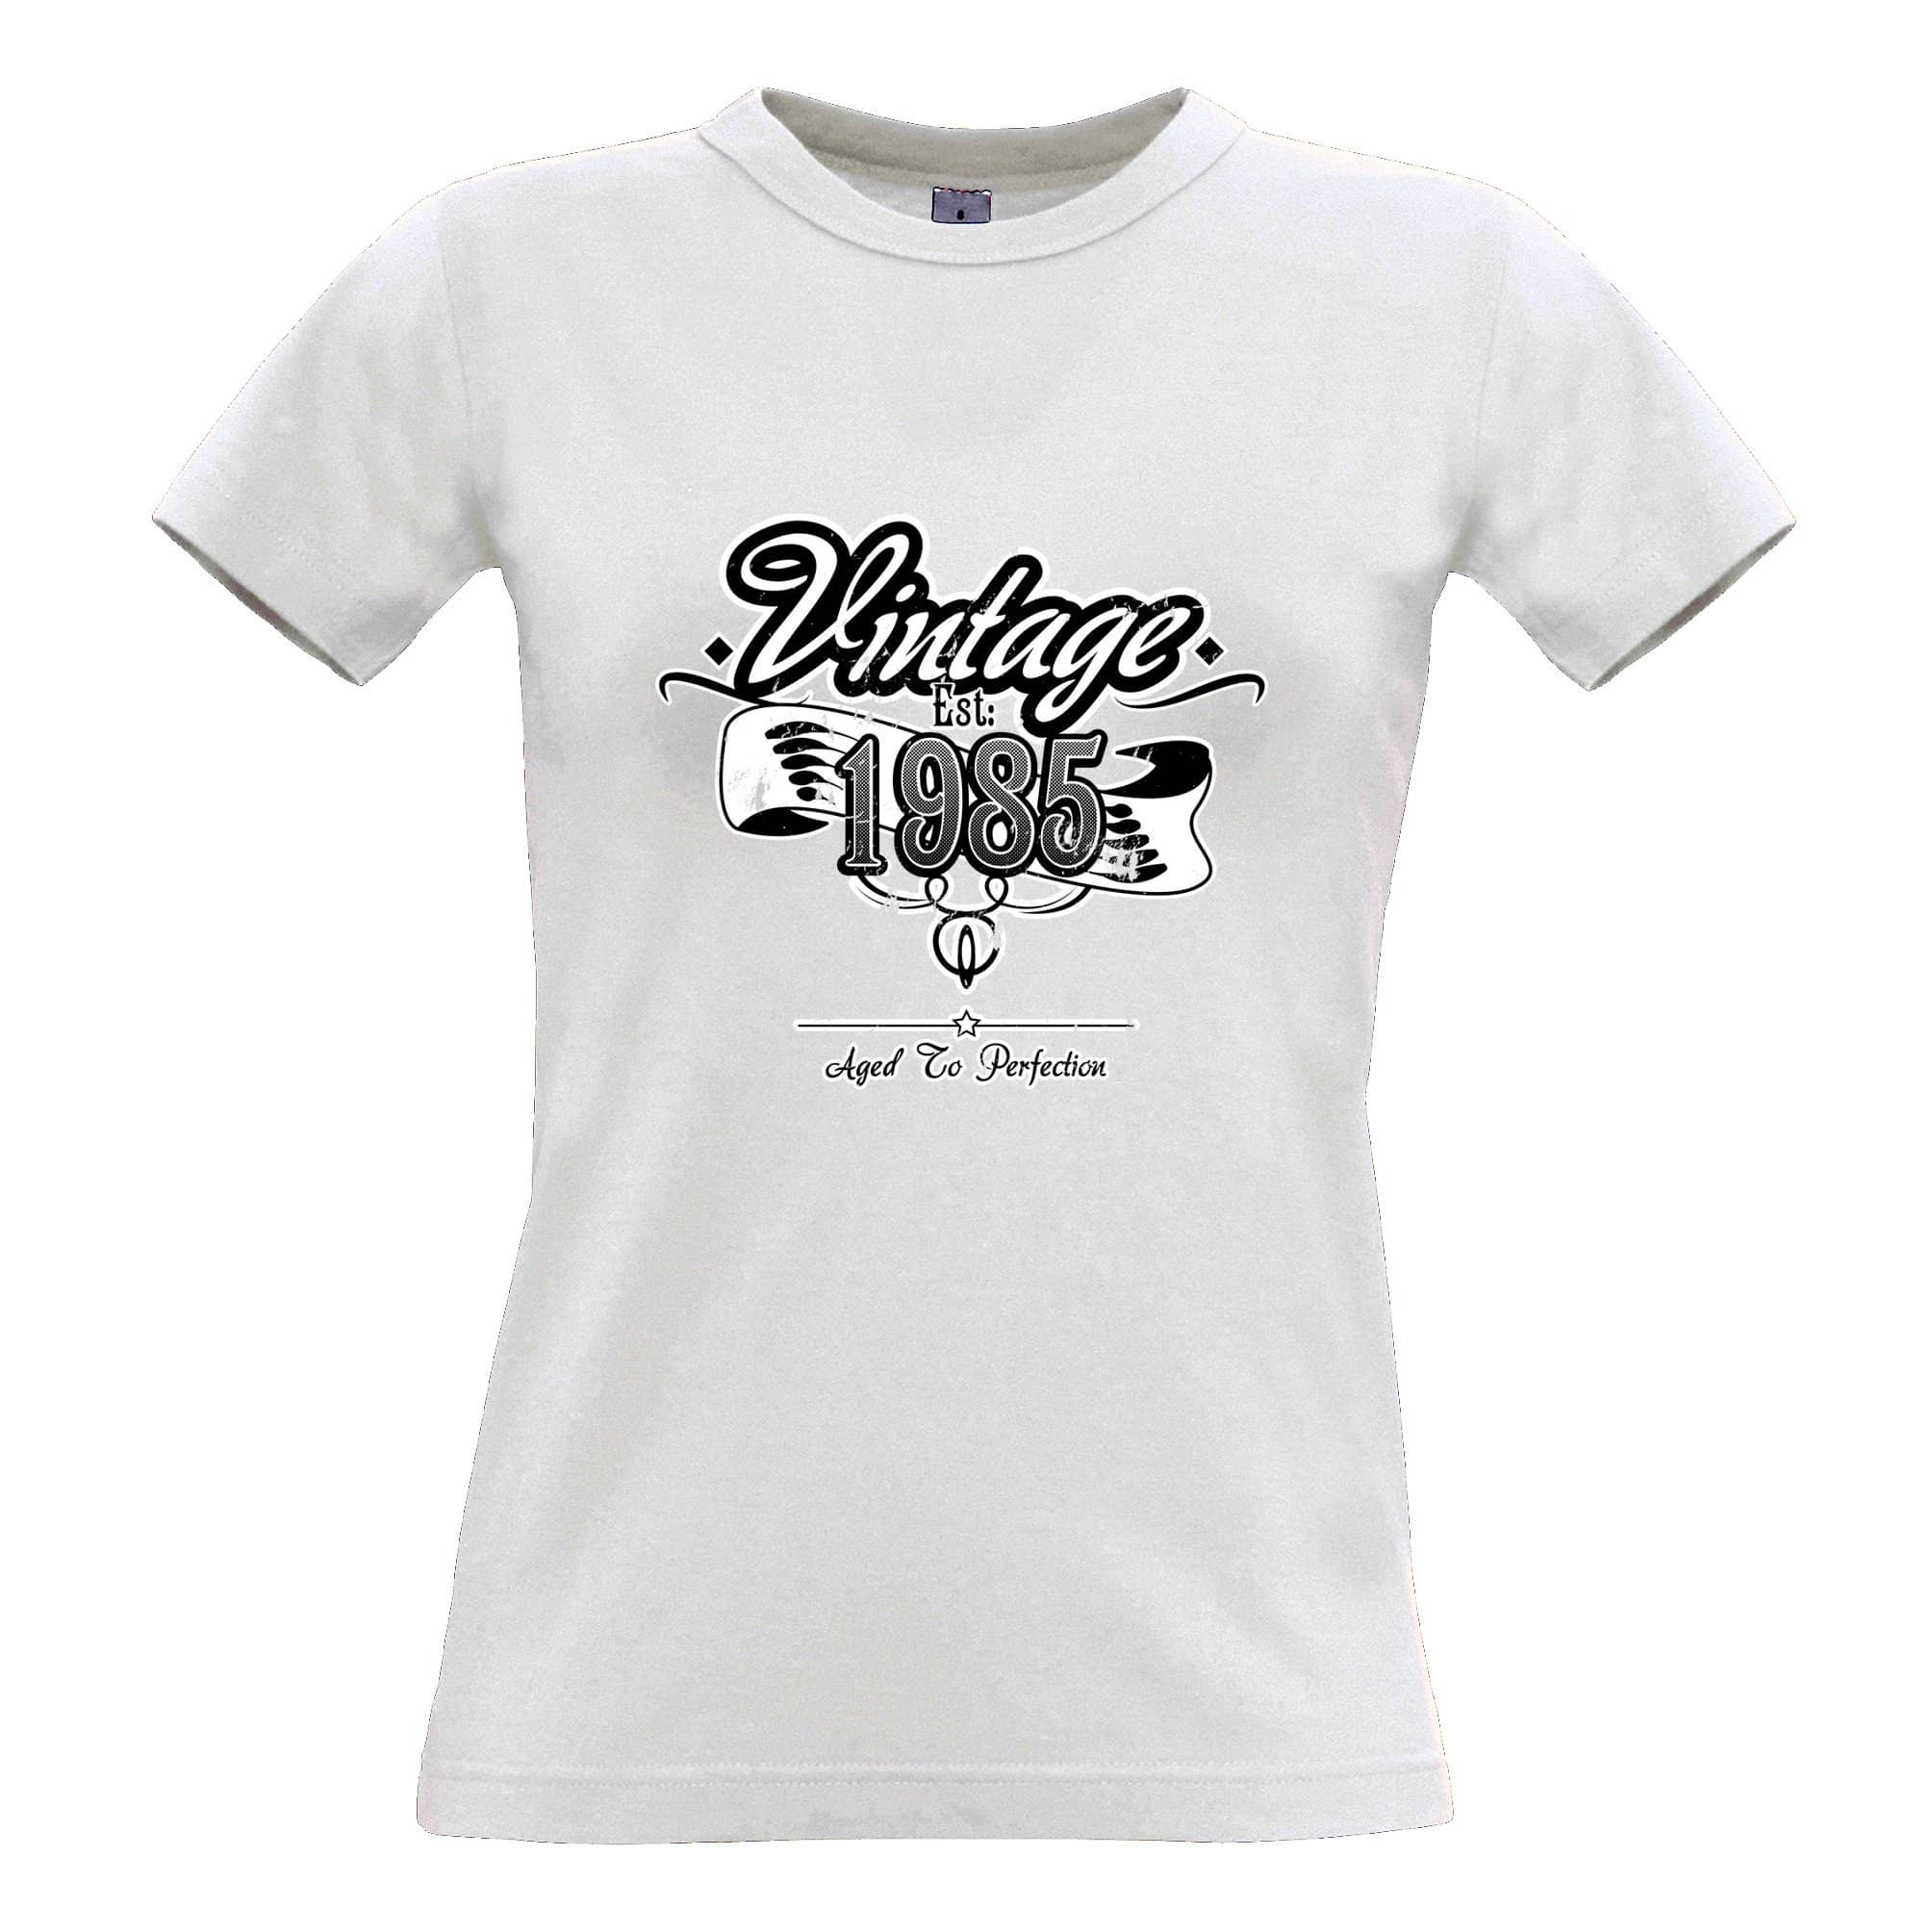 Birthday Womens T Shirt Vintage Est. 1985 Aged To Perfection